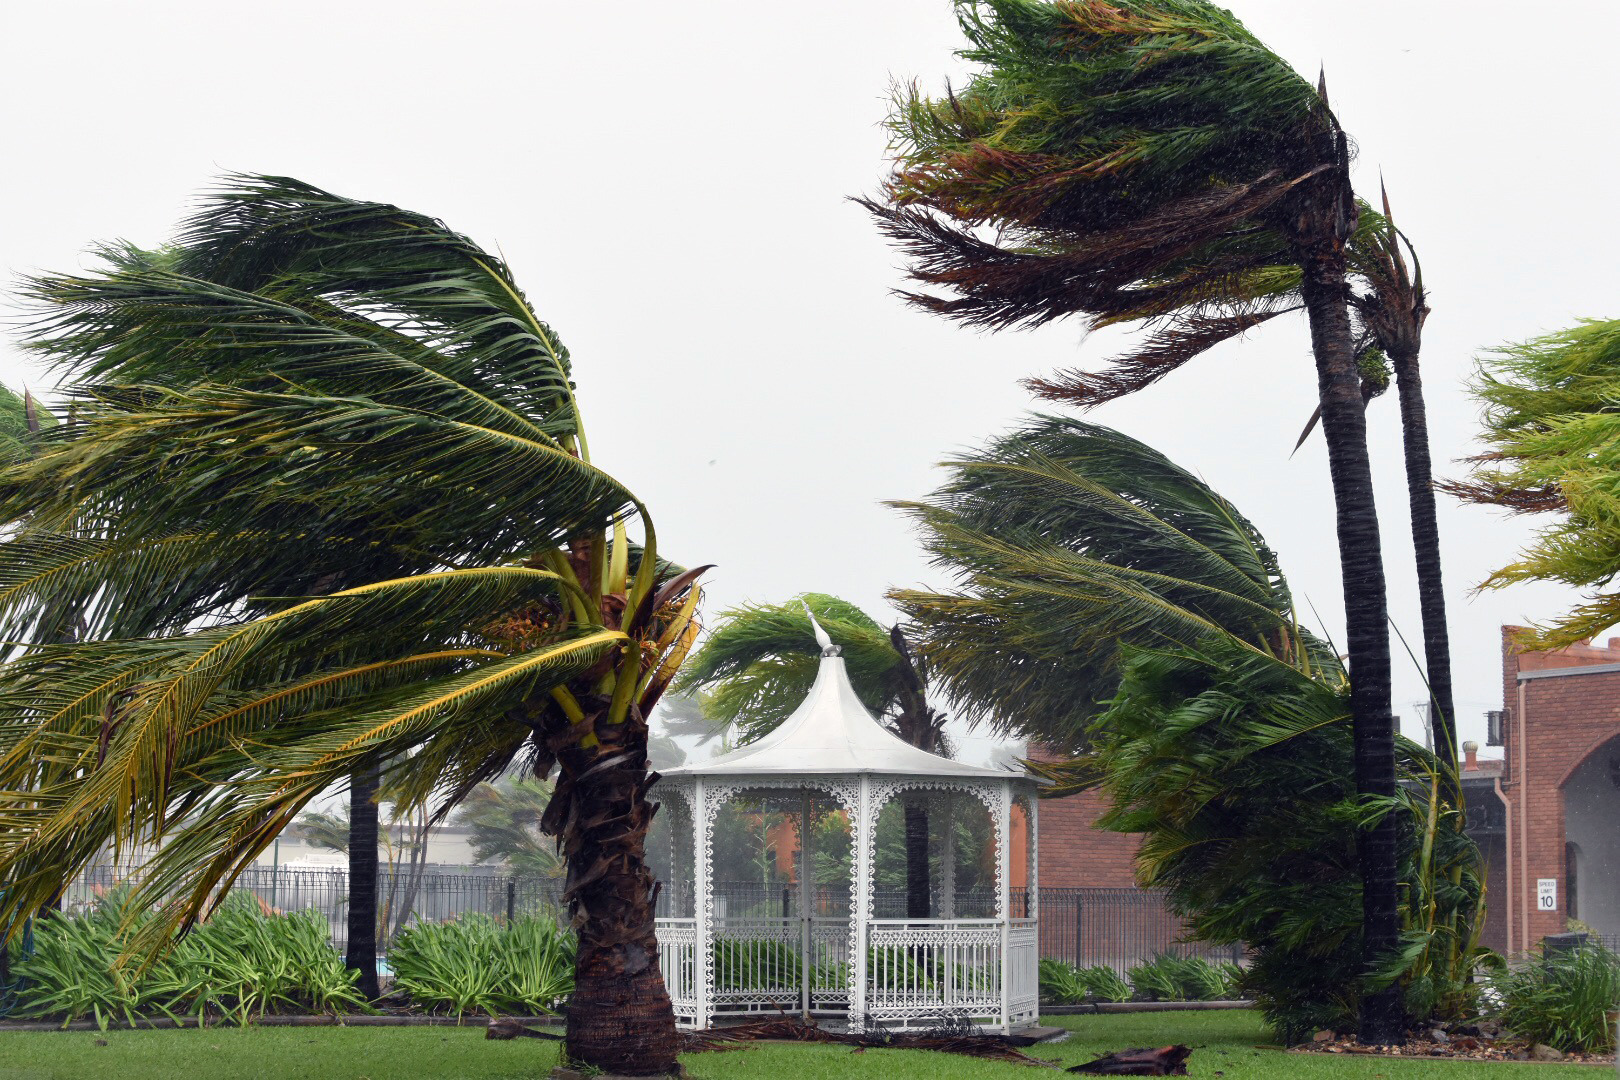 Strong winds lash Bowen, Tuesday, March 28, 2017. Cyclone Debbie's destructive core is battering the exposed mainland town of Airlie Beach where it has damaged homes and snapped trees after blasting Whitsunday Islands with wind gusts above 260km/h. Photo: AAP, Sarah Motherwell